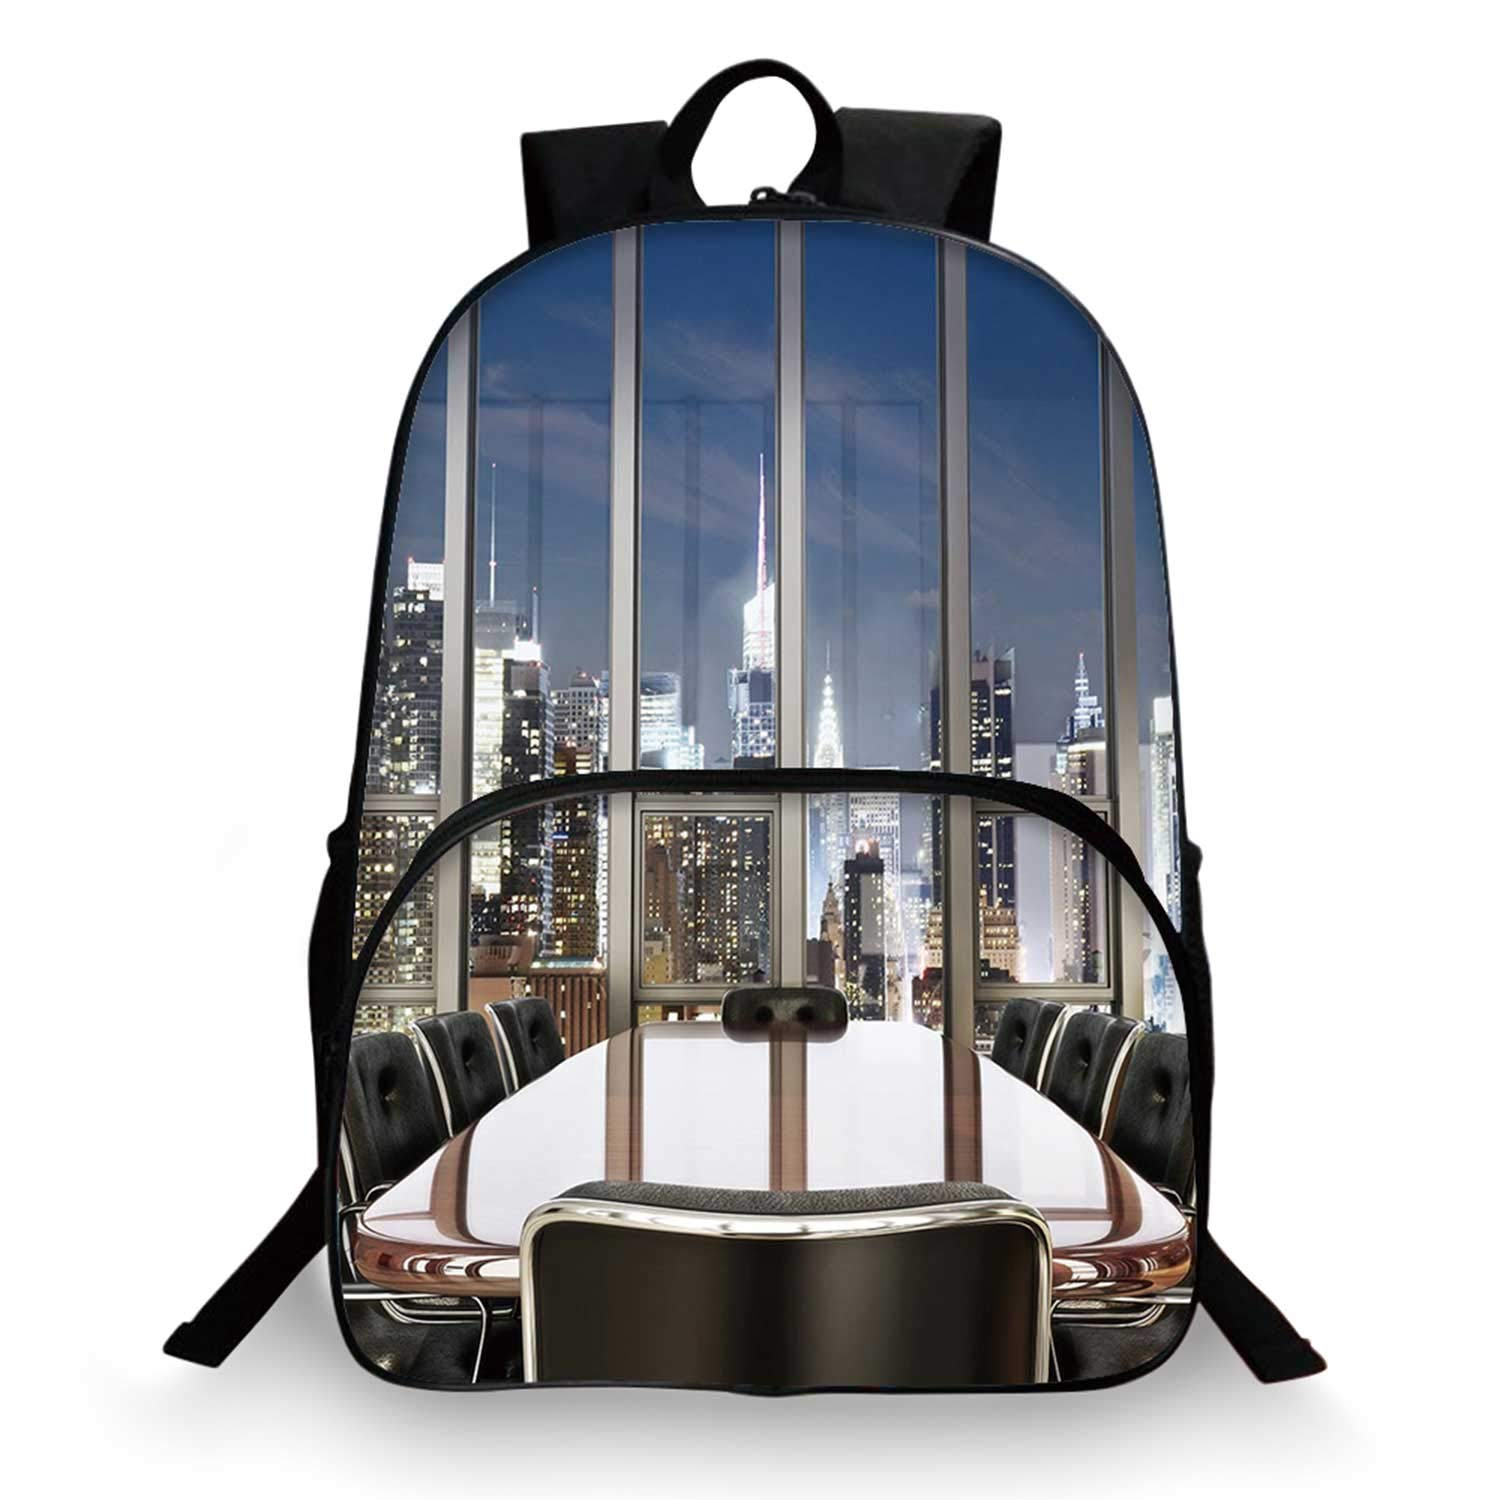 Modern Decor Various Schoolbag,Business Office Conference Room Table Chairs City View at Dusk Realistic for student,11''Lx6''Wx15''H by C COABALLA